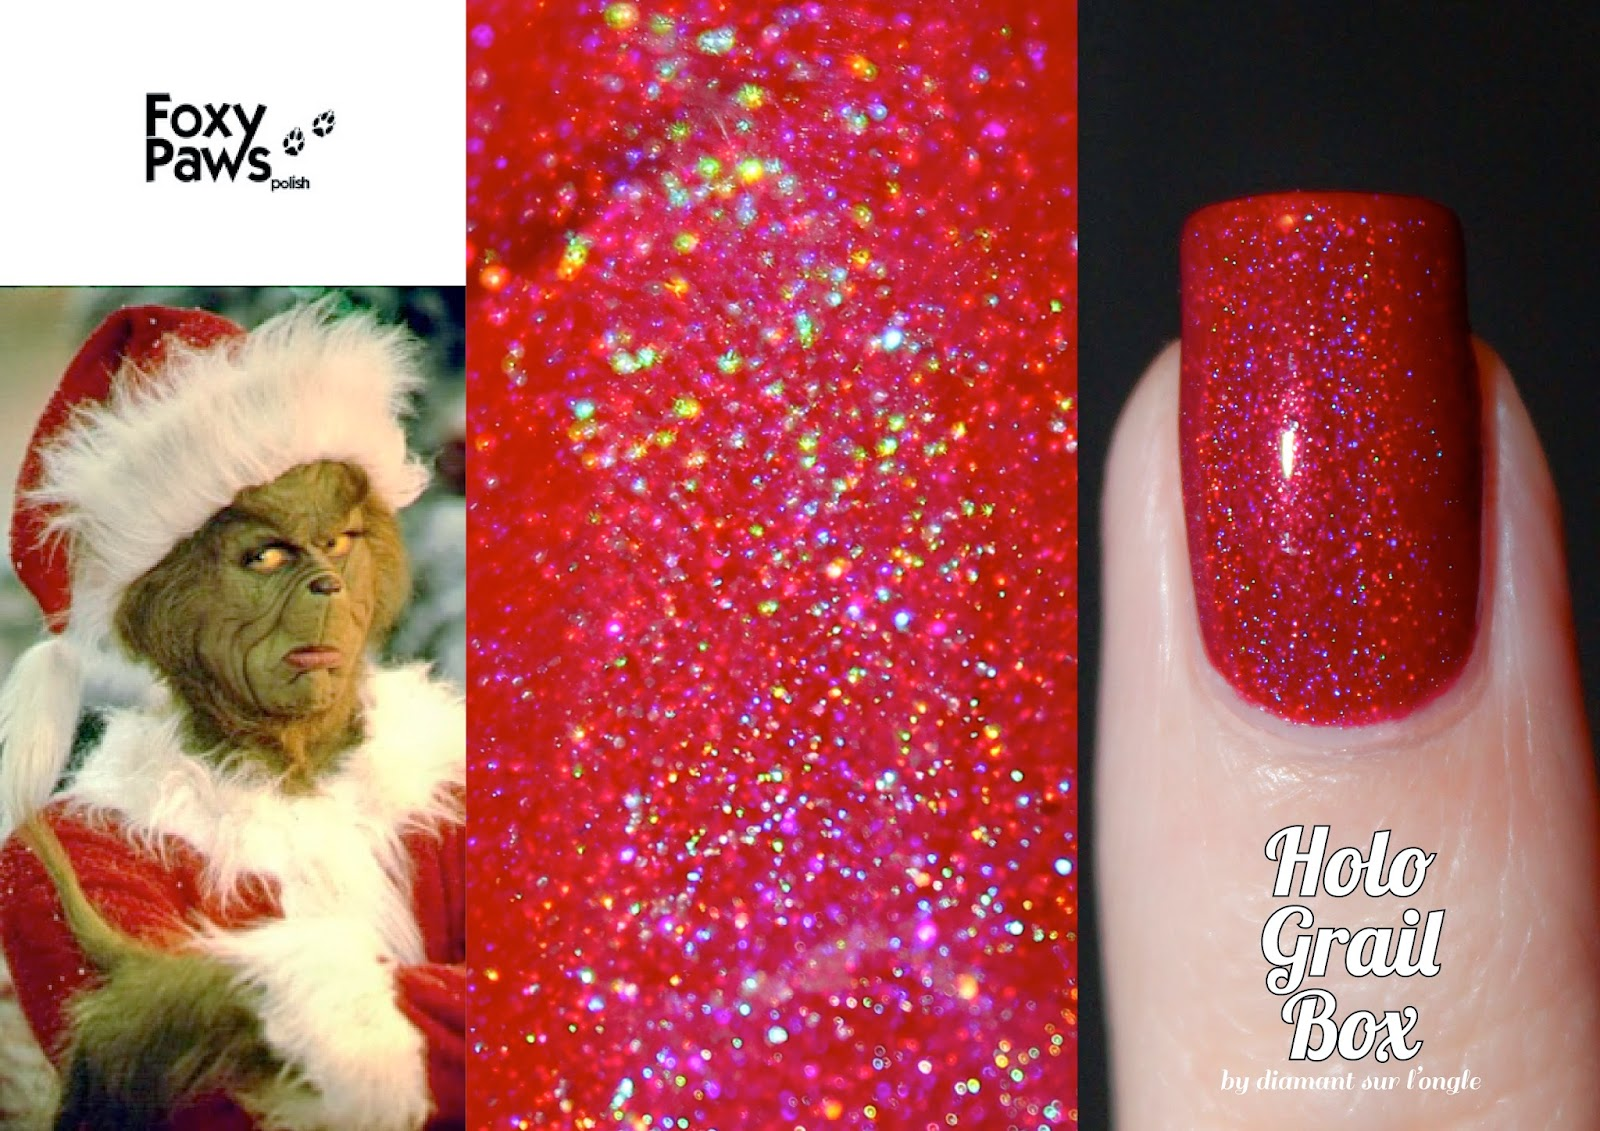 Holo Grail Box December 2014 : The Grinch Who Stole Christmas